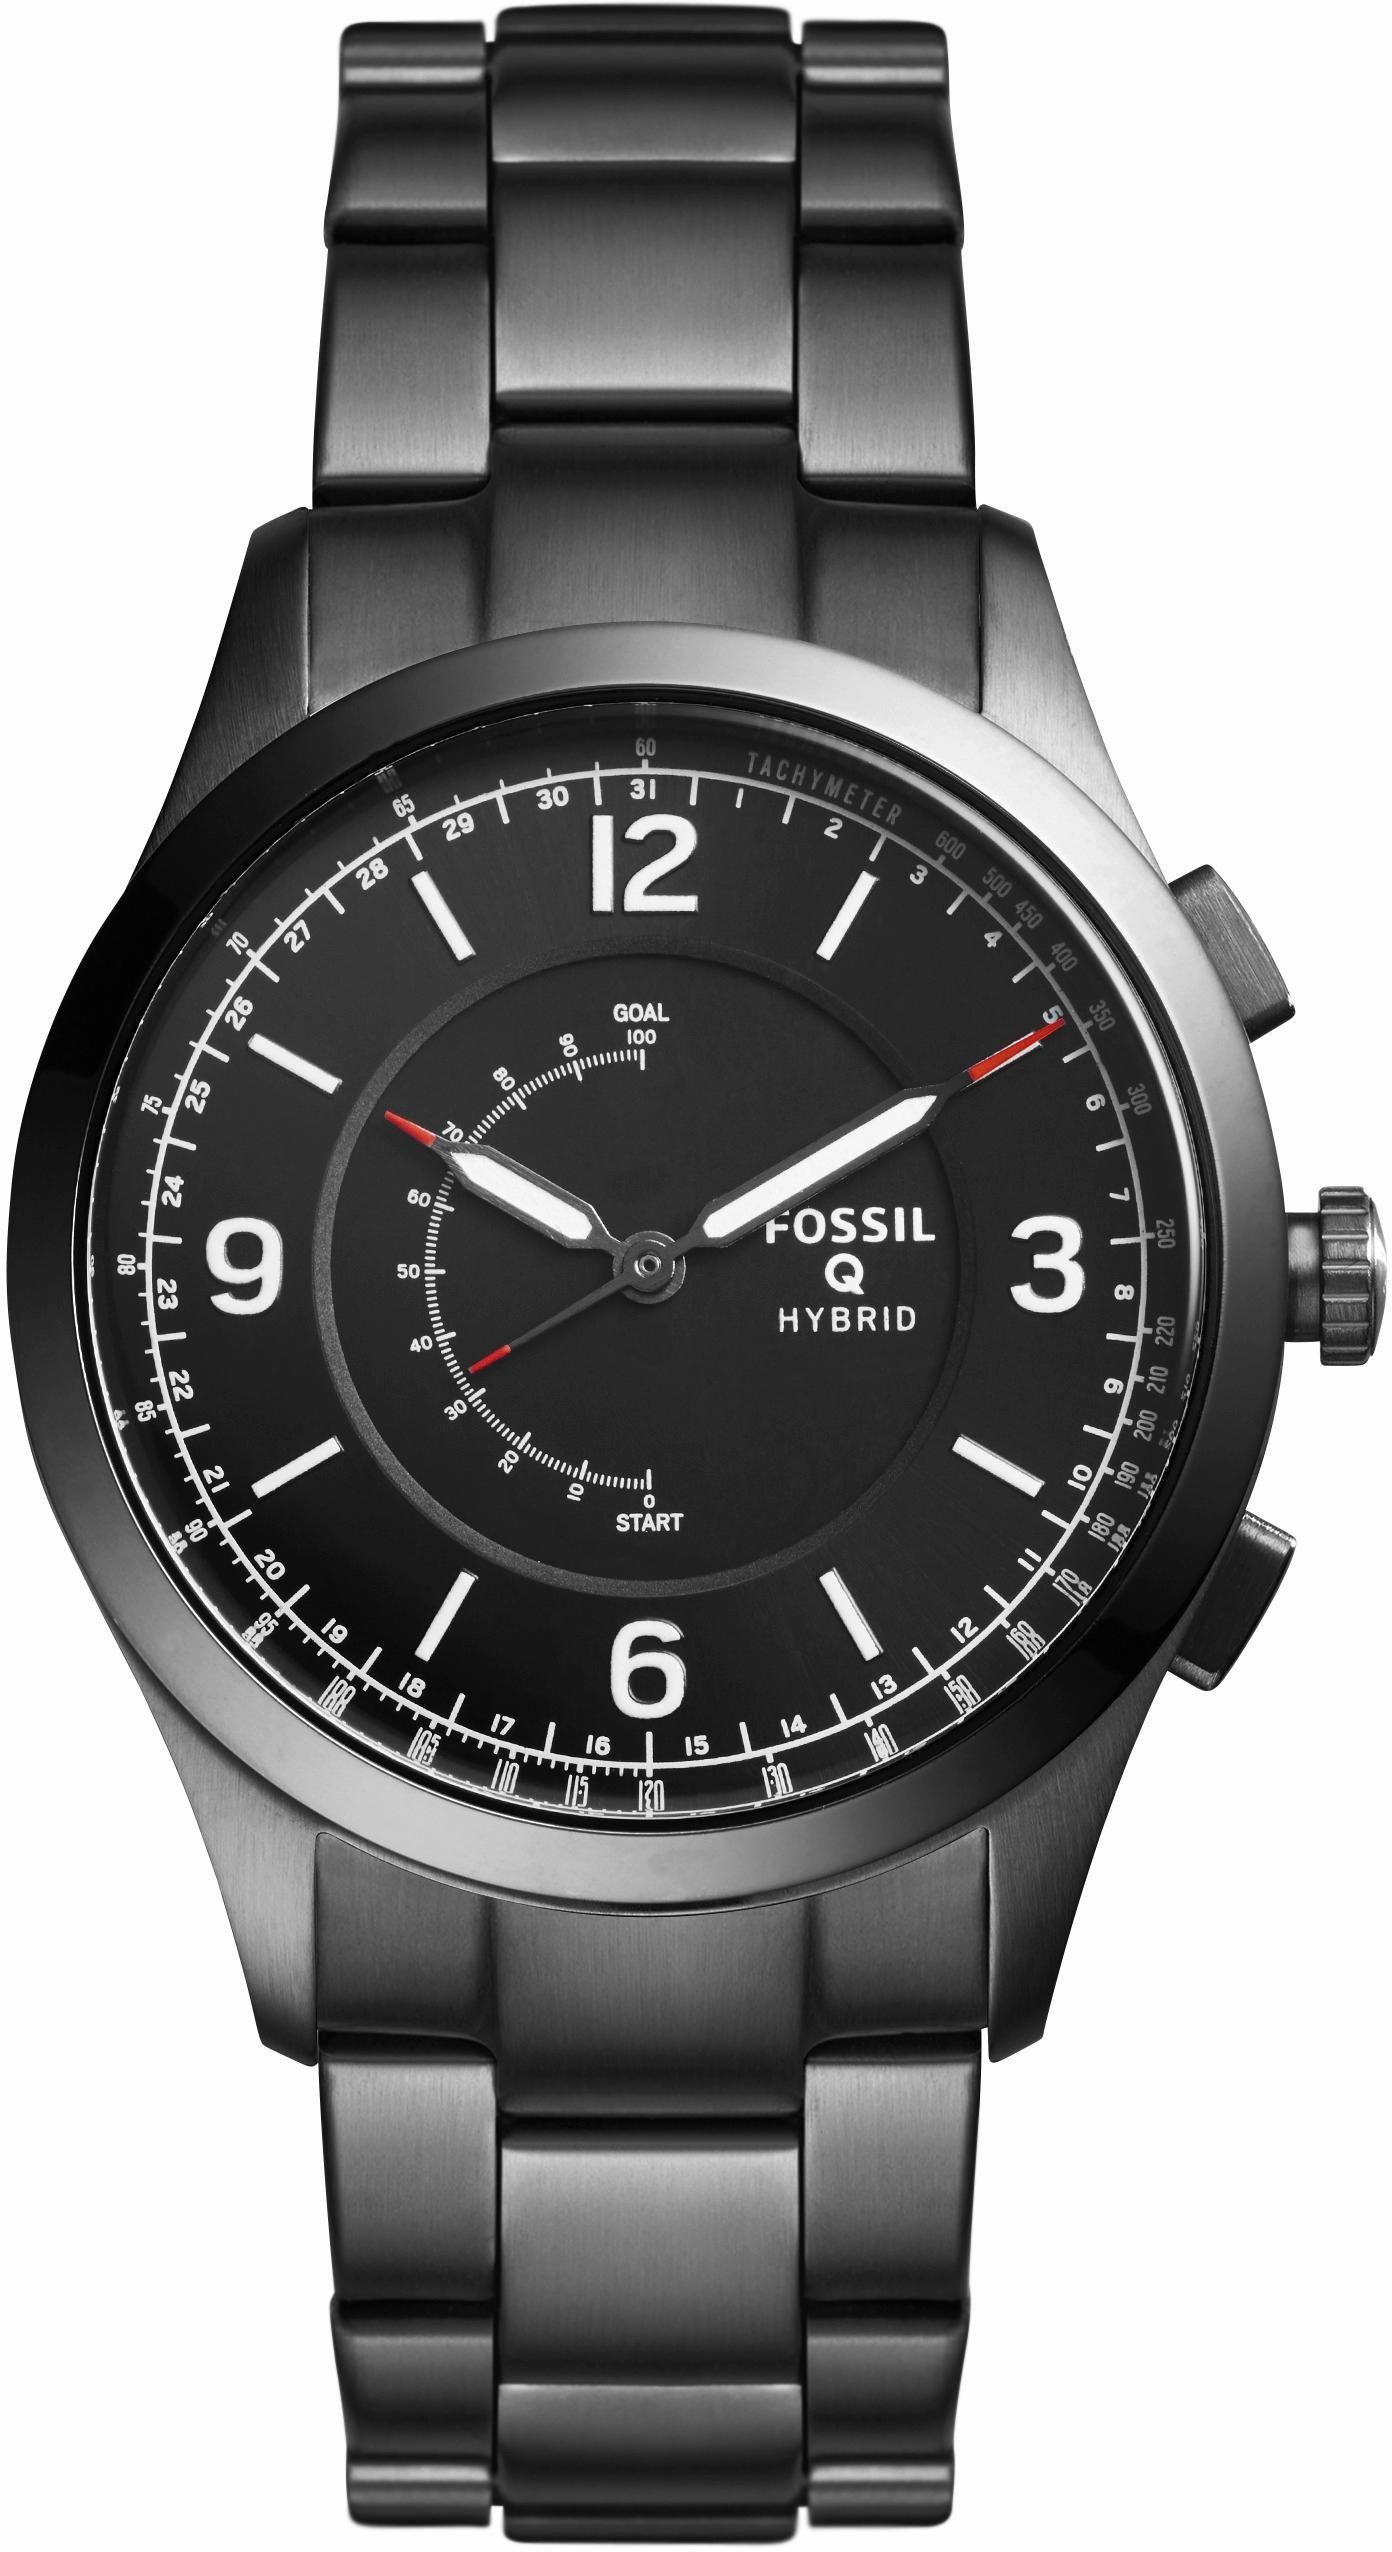 FOSSIL Q Q ACTIVIST, FTW1207 Smartwatch (Android Wear)